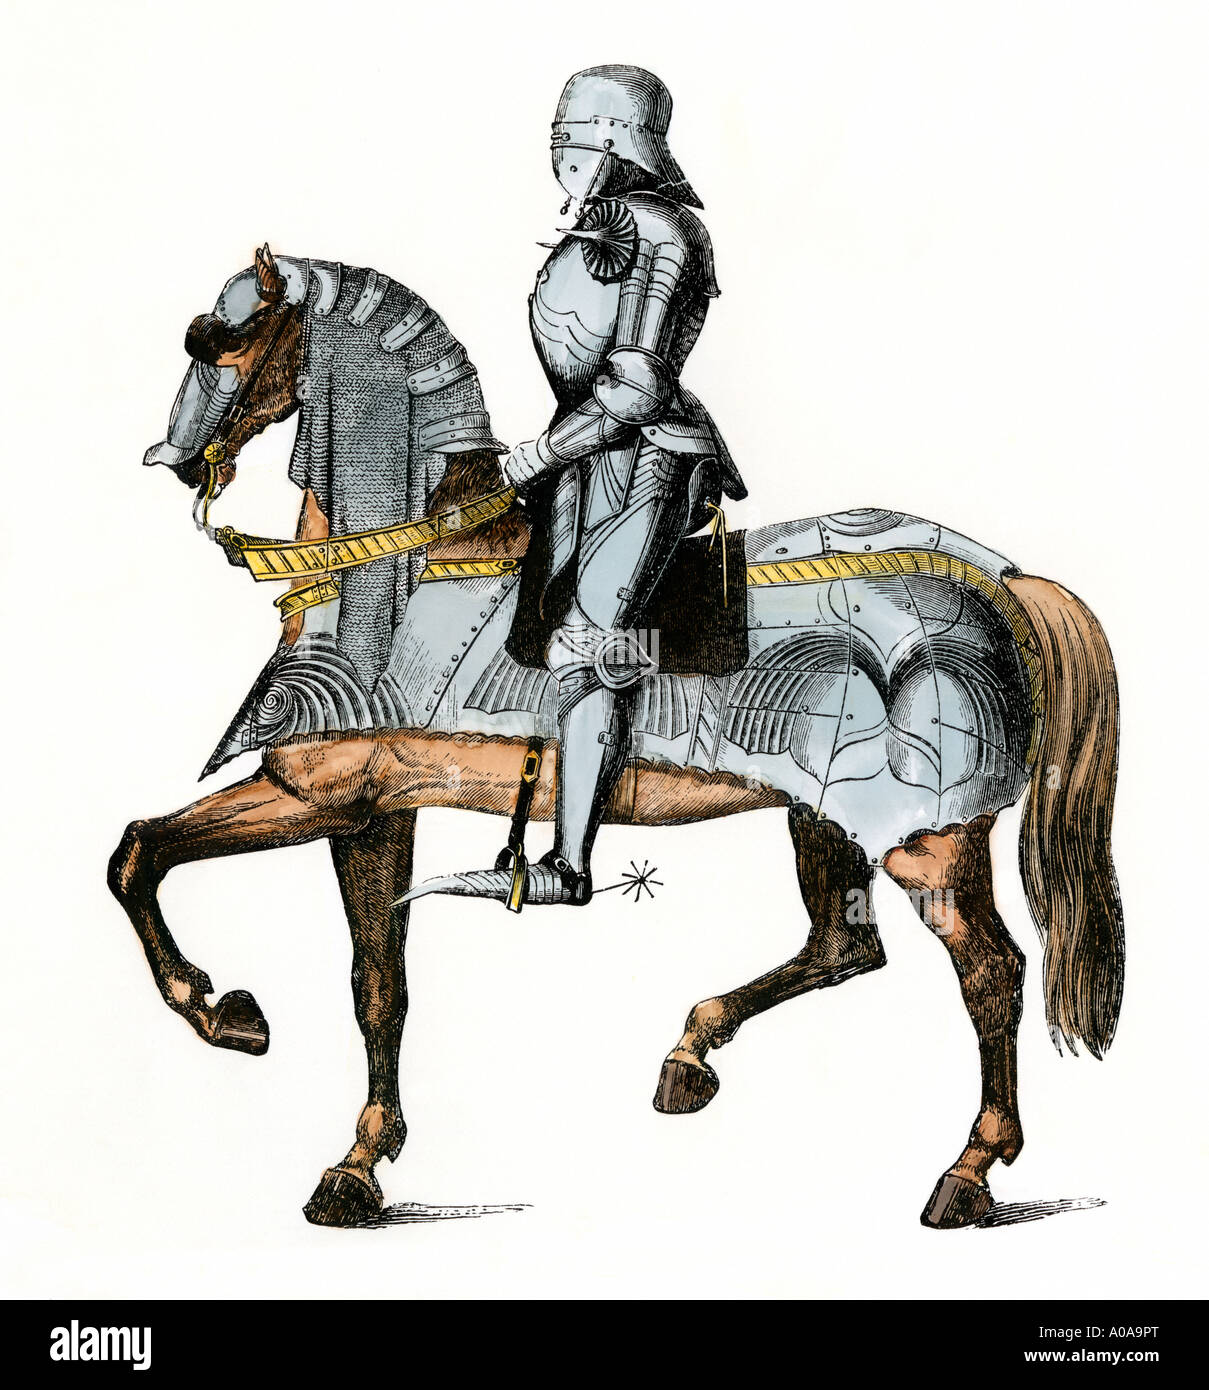 Knight armed and mounted ready for battle. Hand-colored woodcut - Stock Image